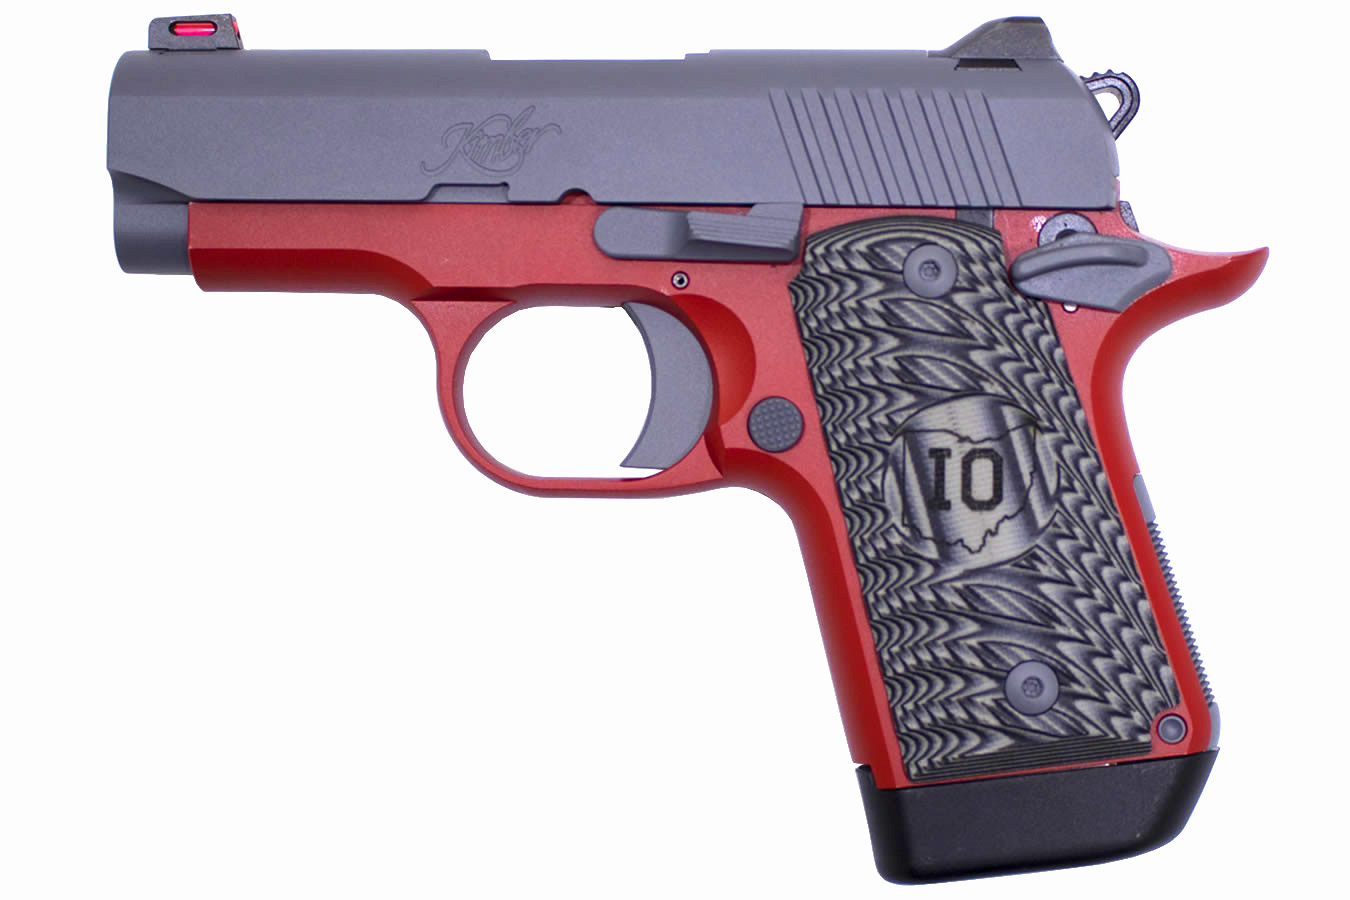 Micro 9 9mm Matte Grey Slide and Matte Red Frame Special Edition Pistol